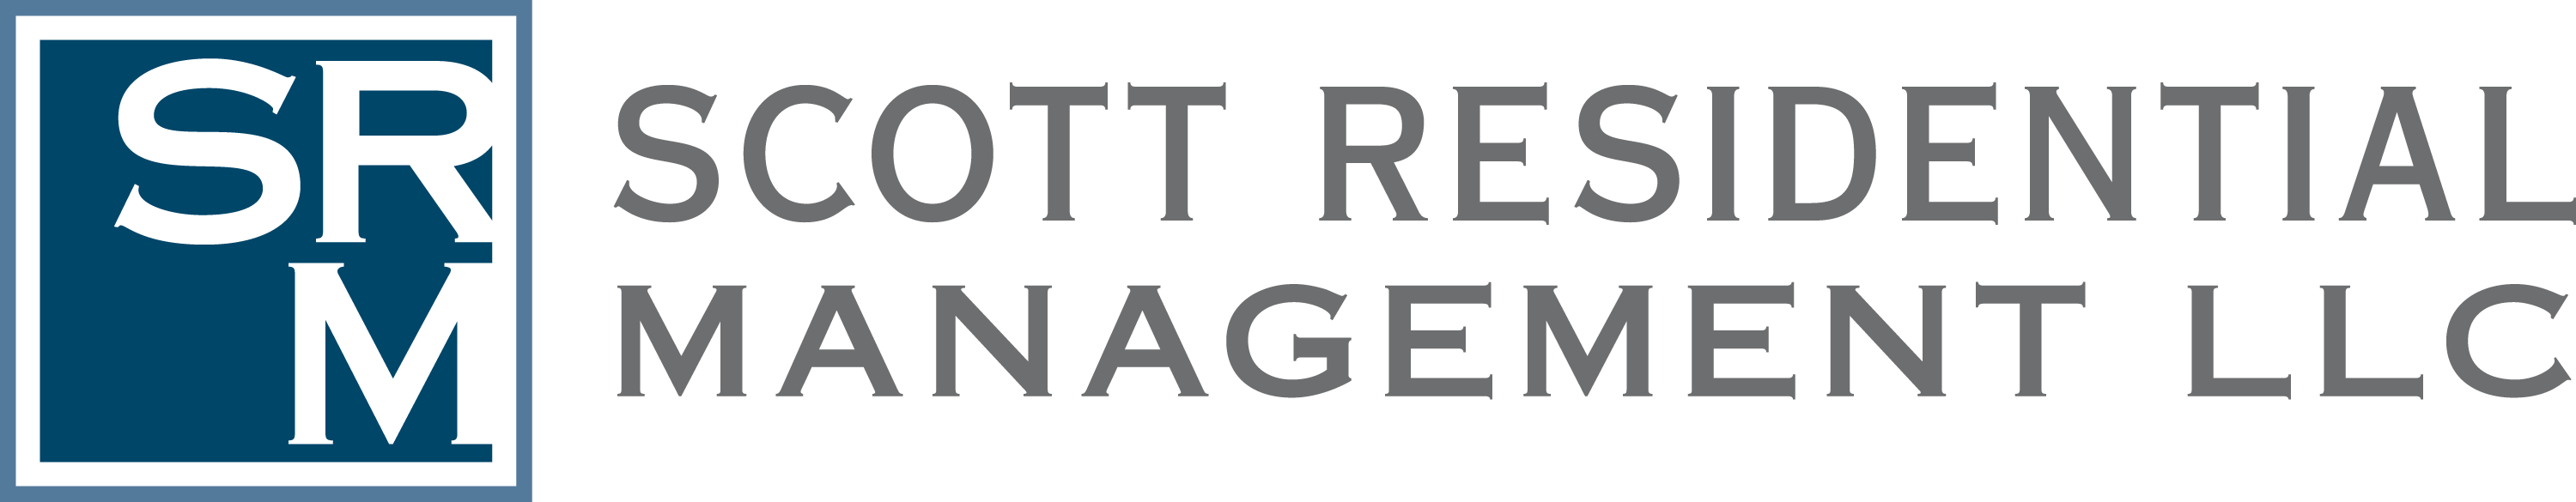 Scott Residential Management LLC